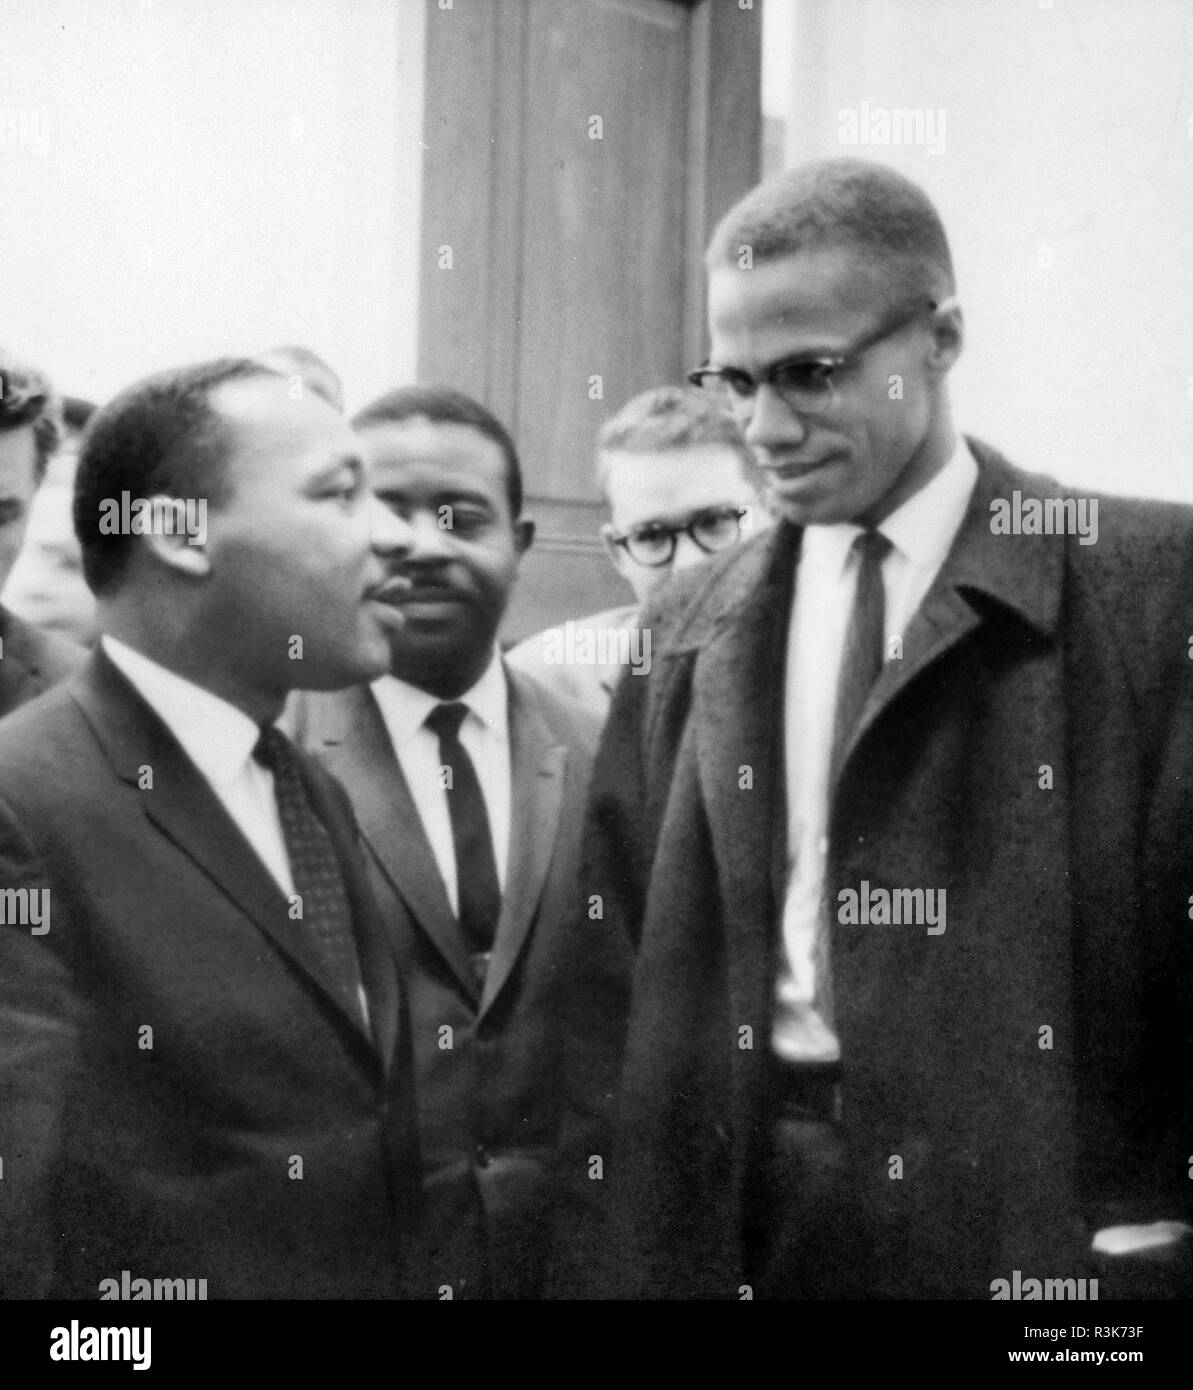 MARTIN LUTHER KING (1929-1968) American civil rights leader  at left with Malcolm X ion 26 March 1964. Photo: Library of Congress. - Stock Image